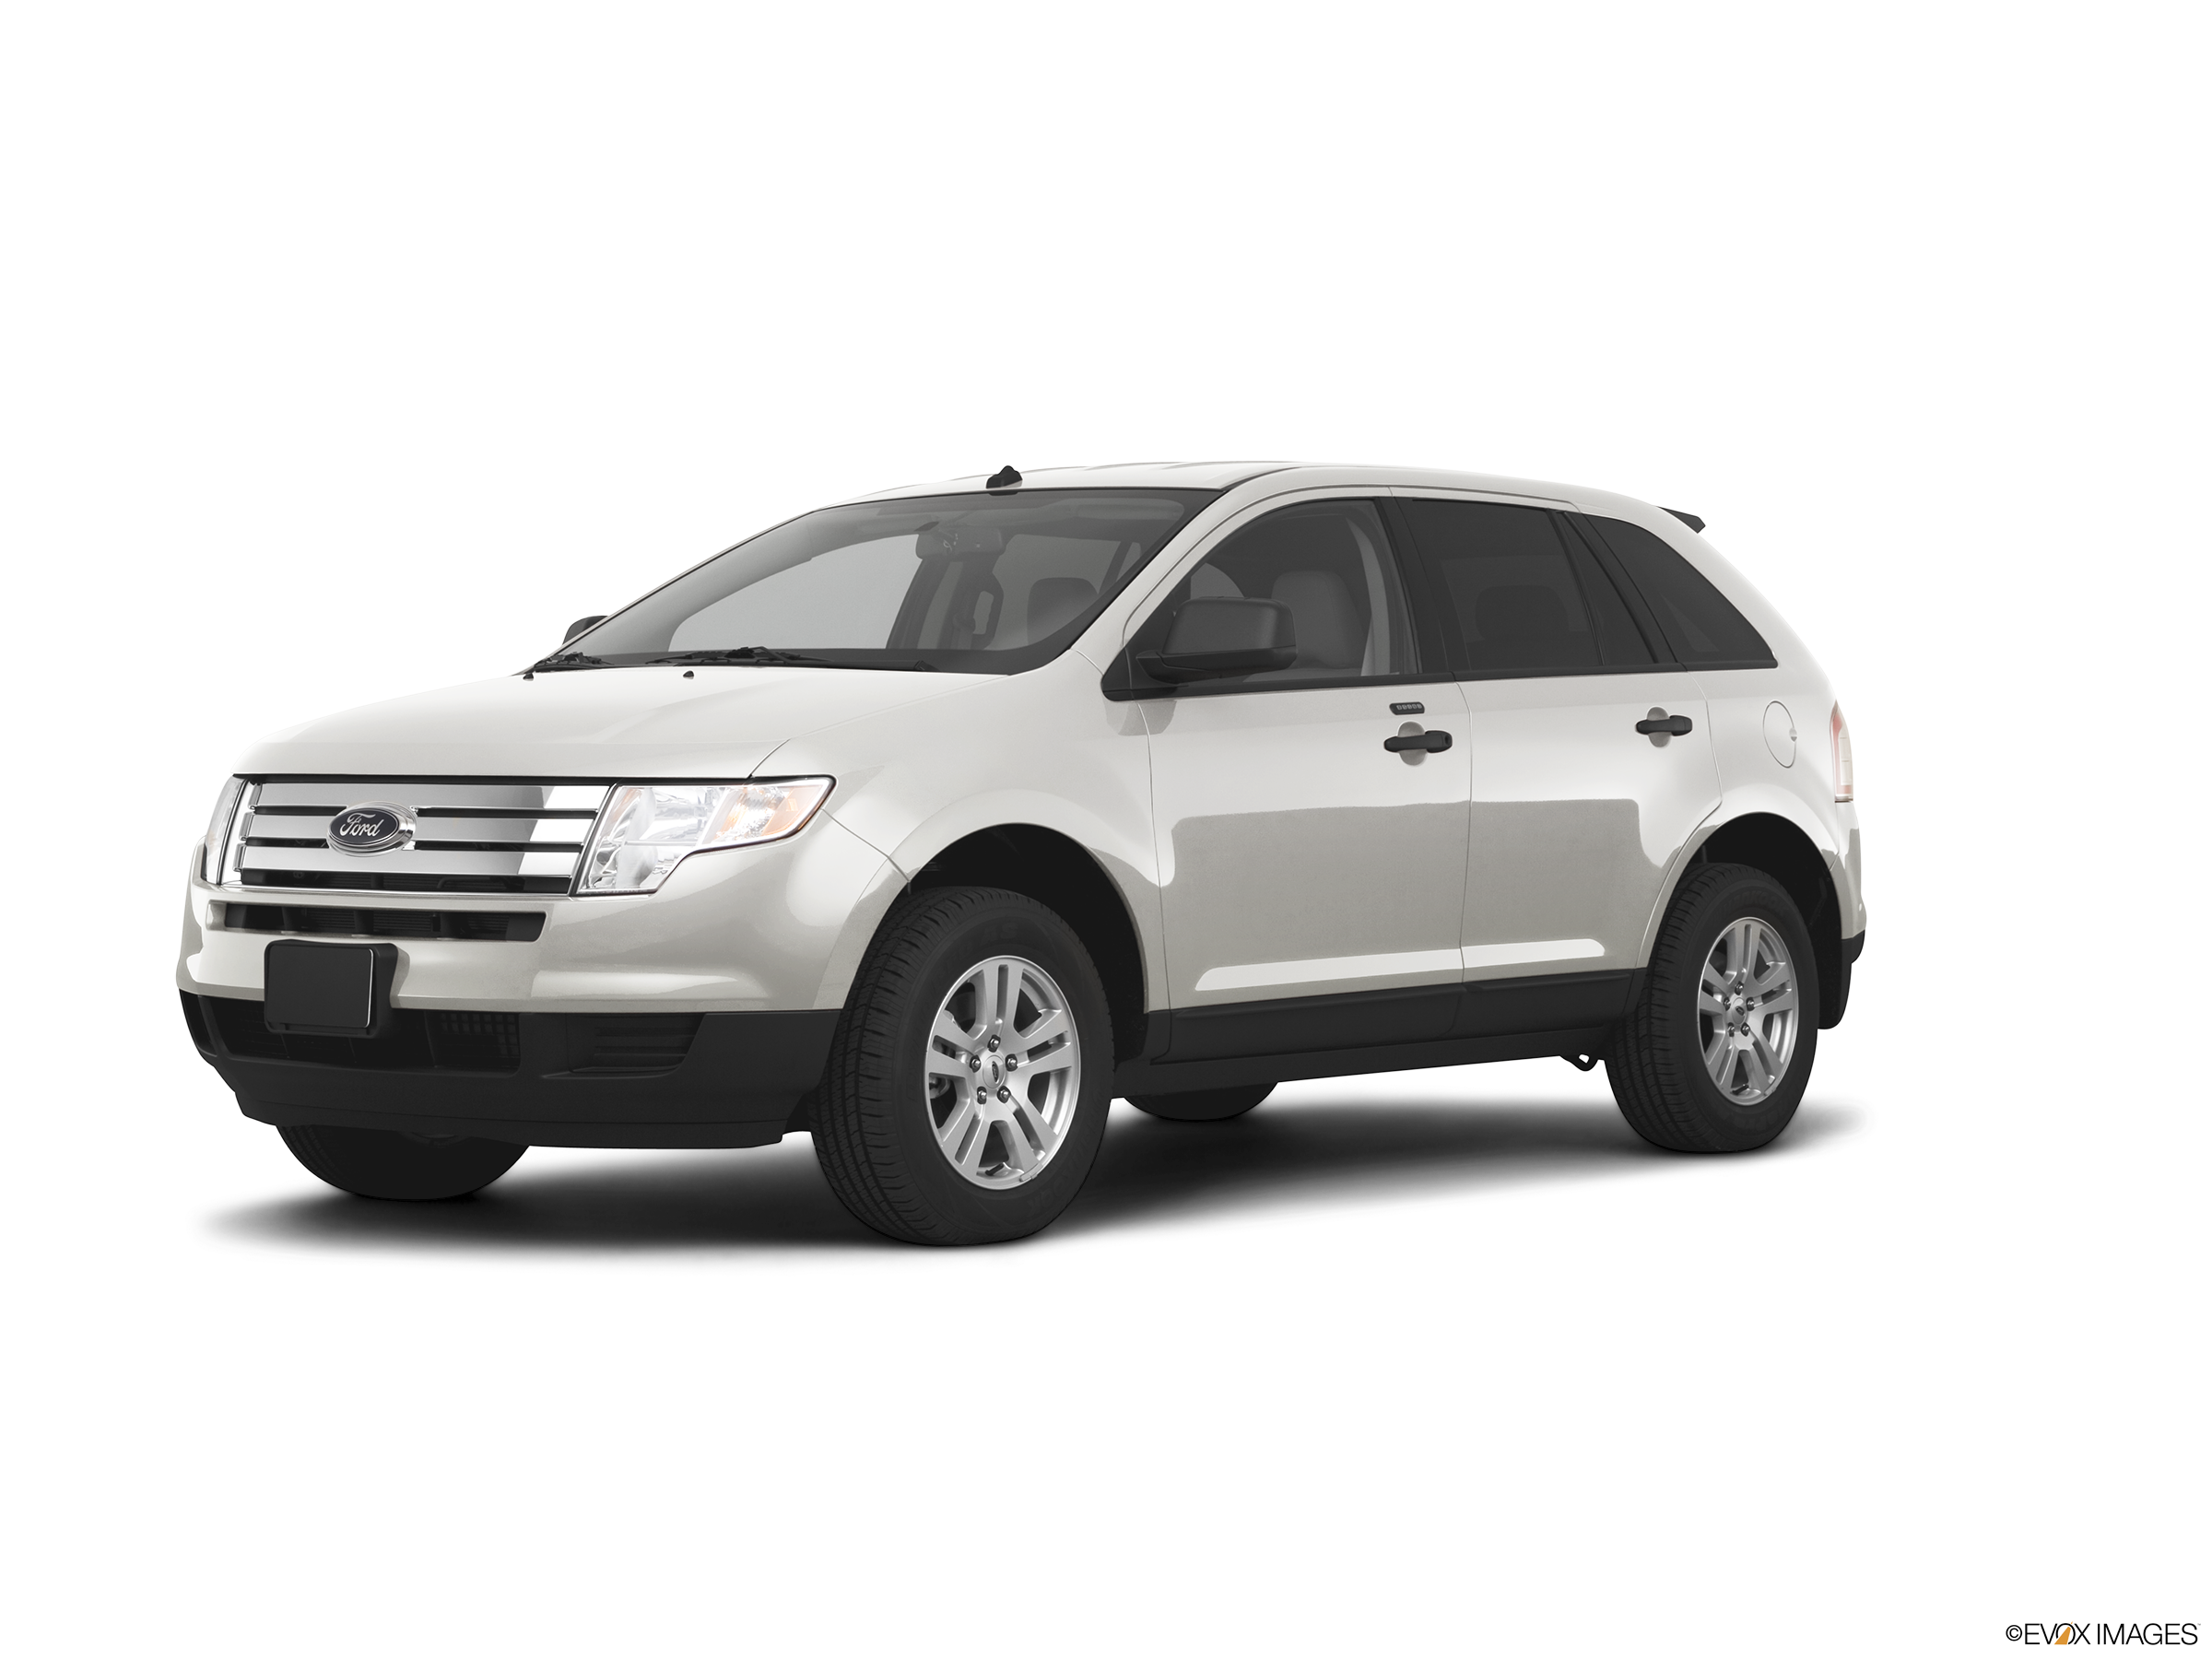 2010 Ford Edge Values Cars For Sale Kelley Blue Book